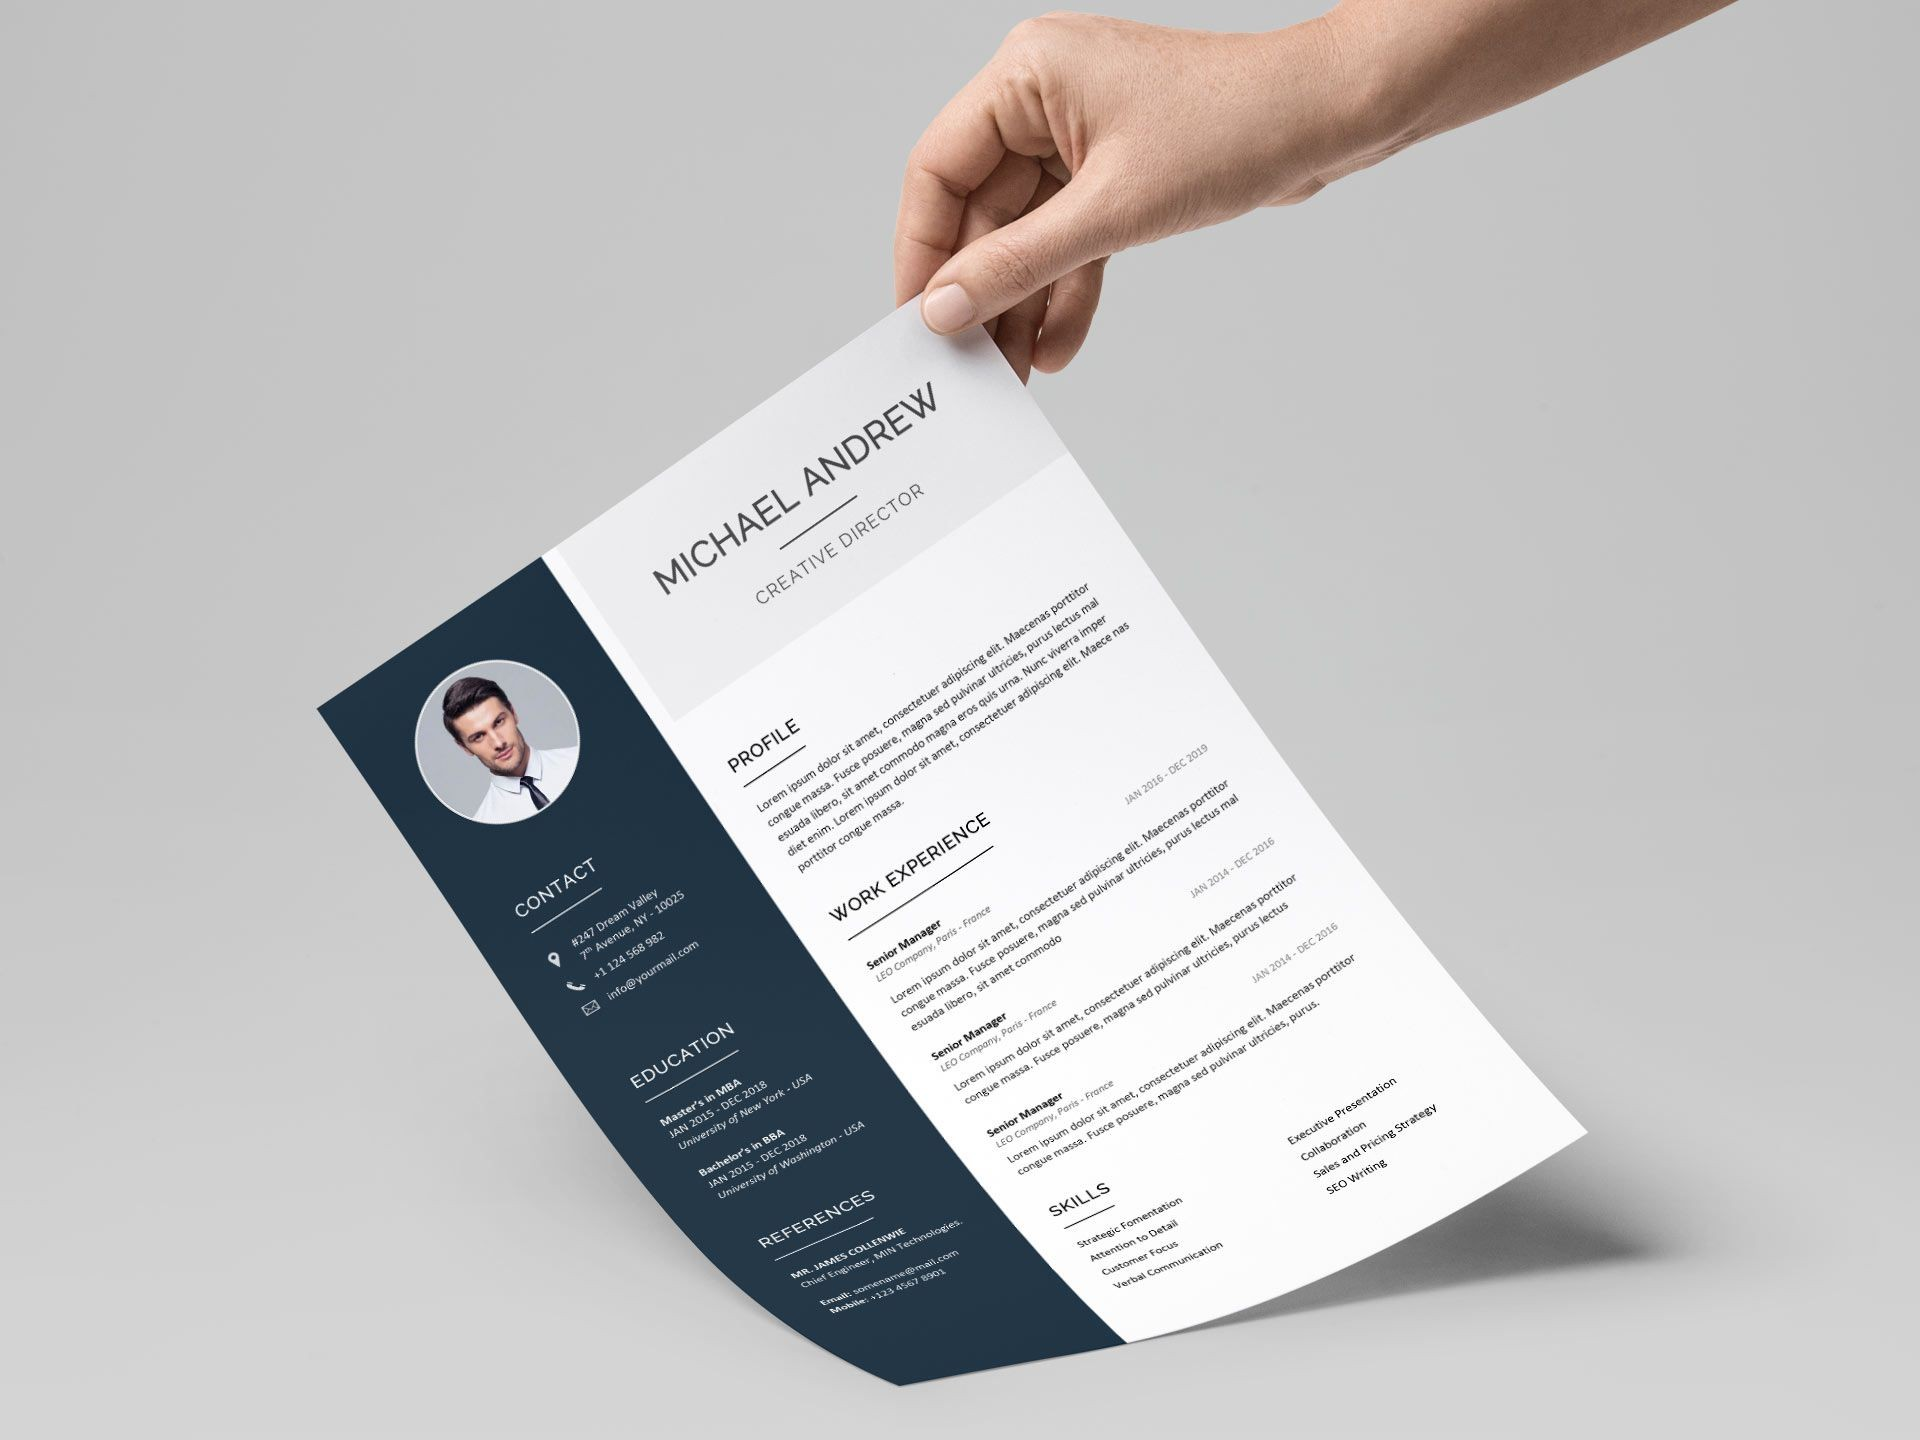 004 Formidable Free Stylish Resume Template Photo  Templates Word Download1920